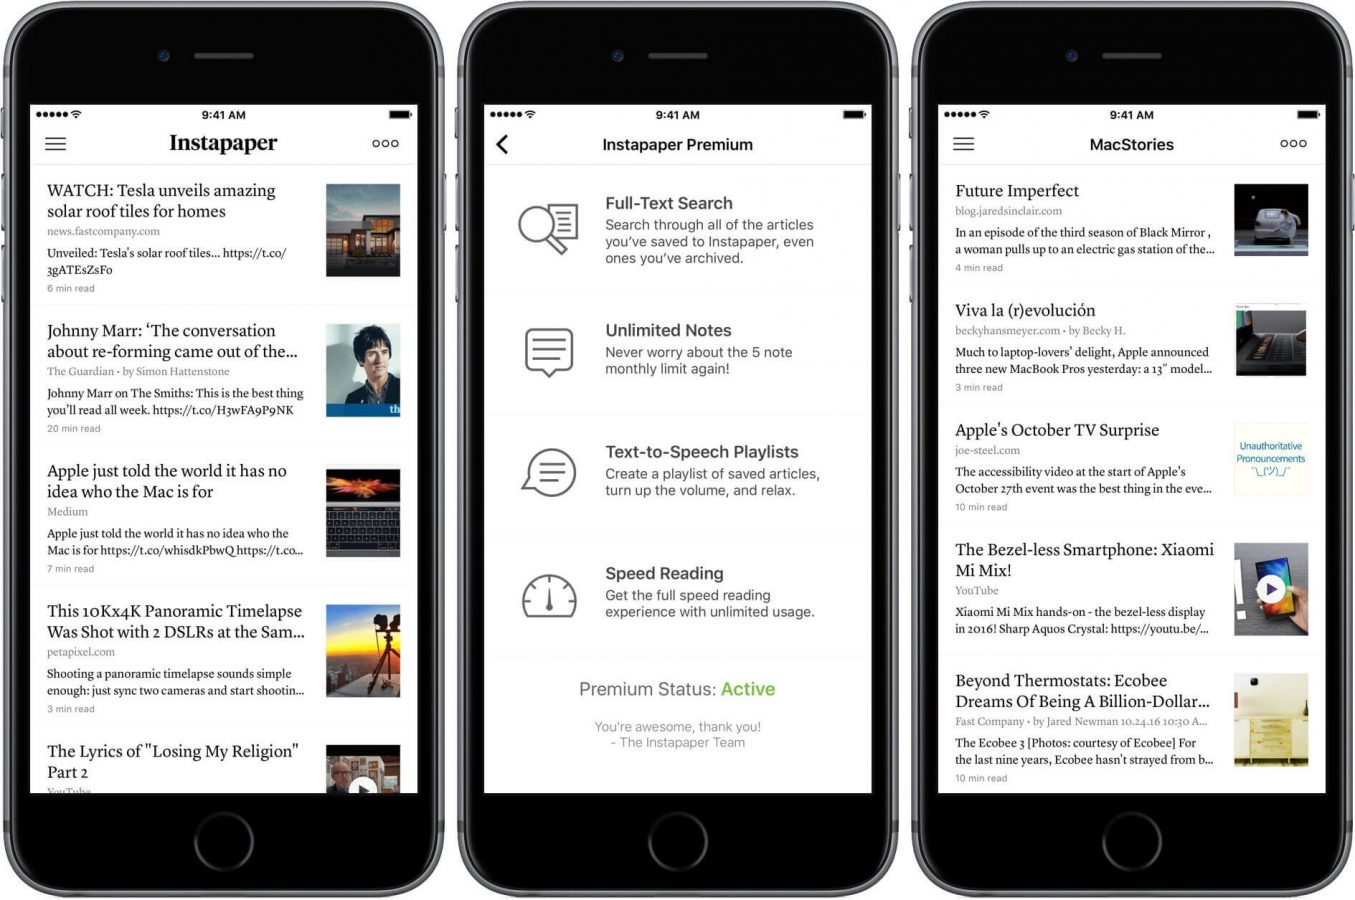 instapaper pinterest end partnership